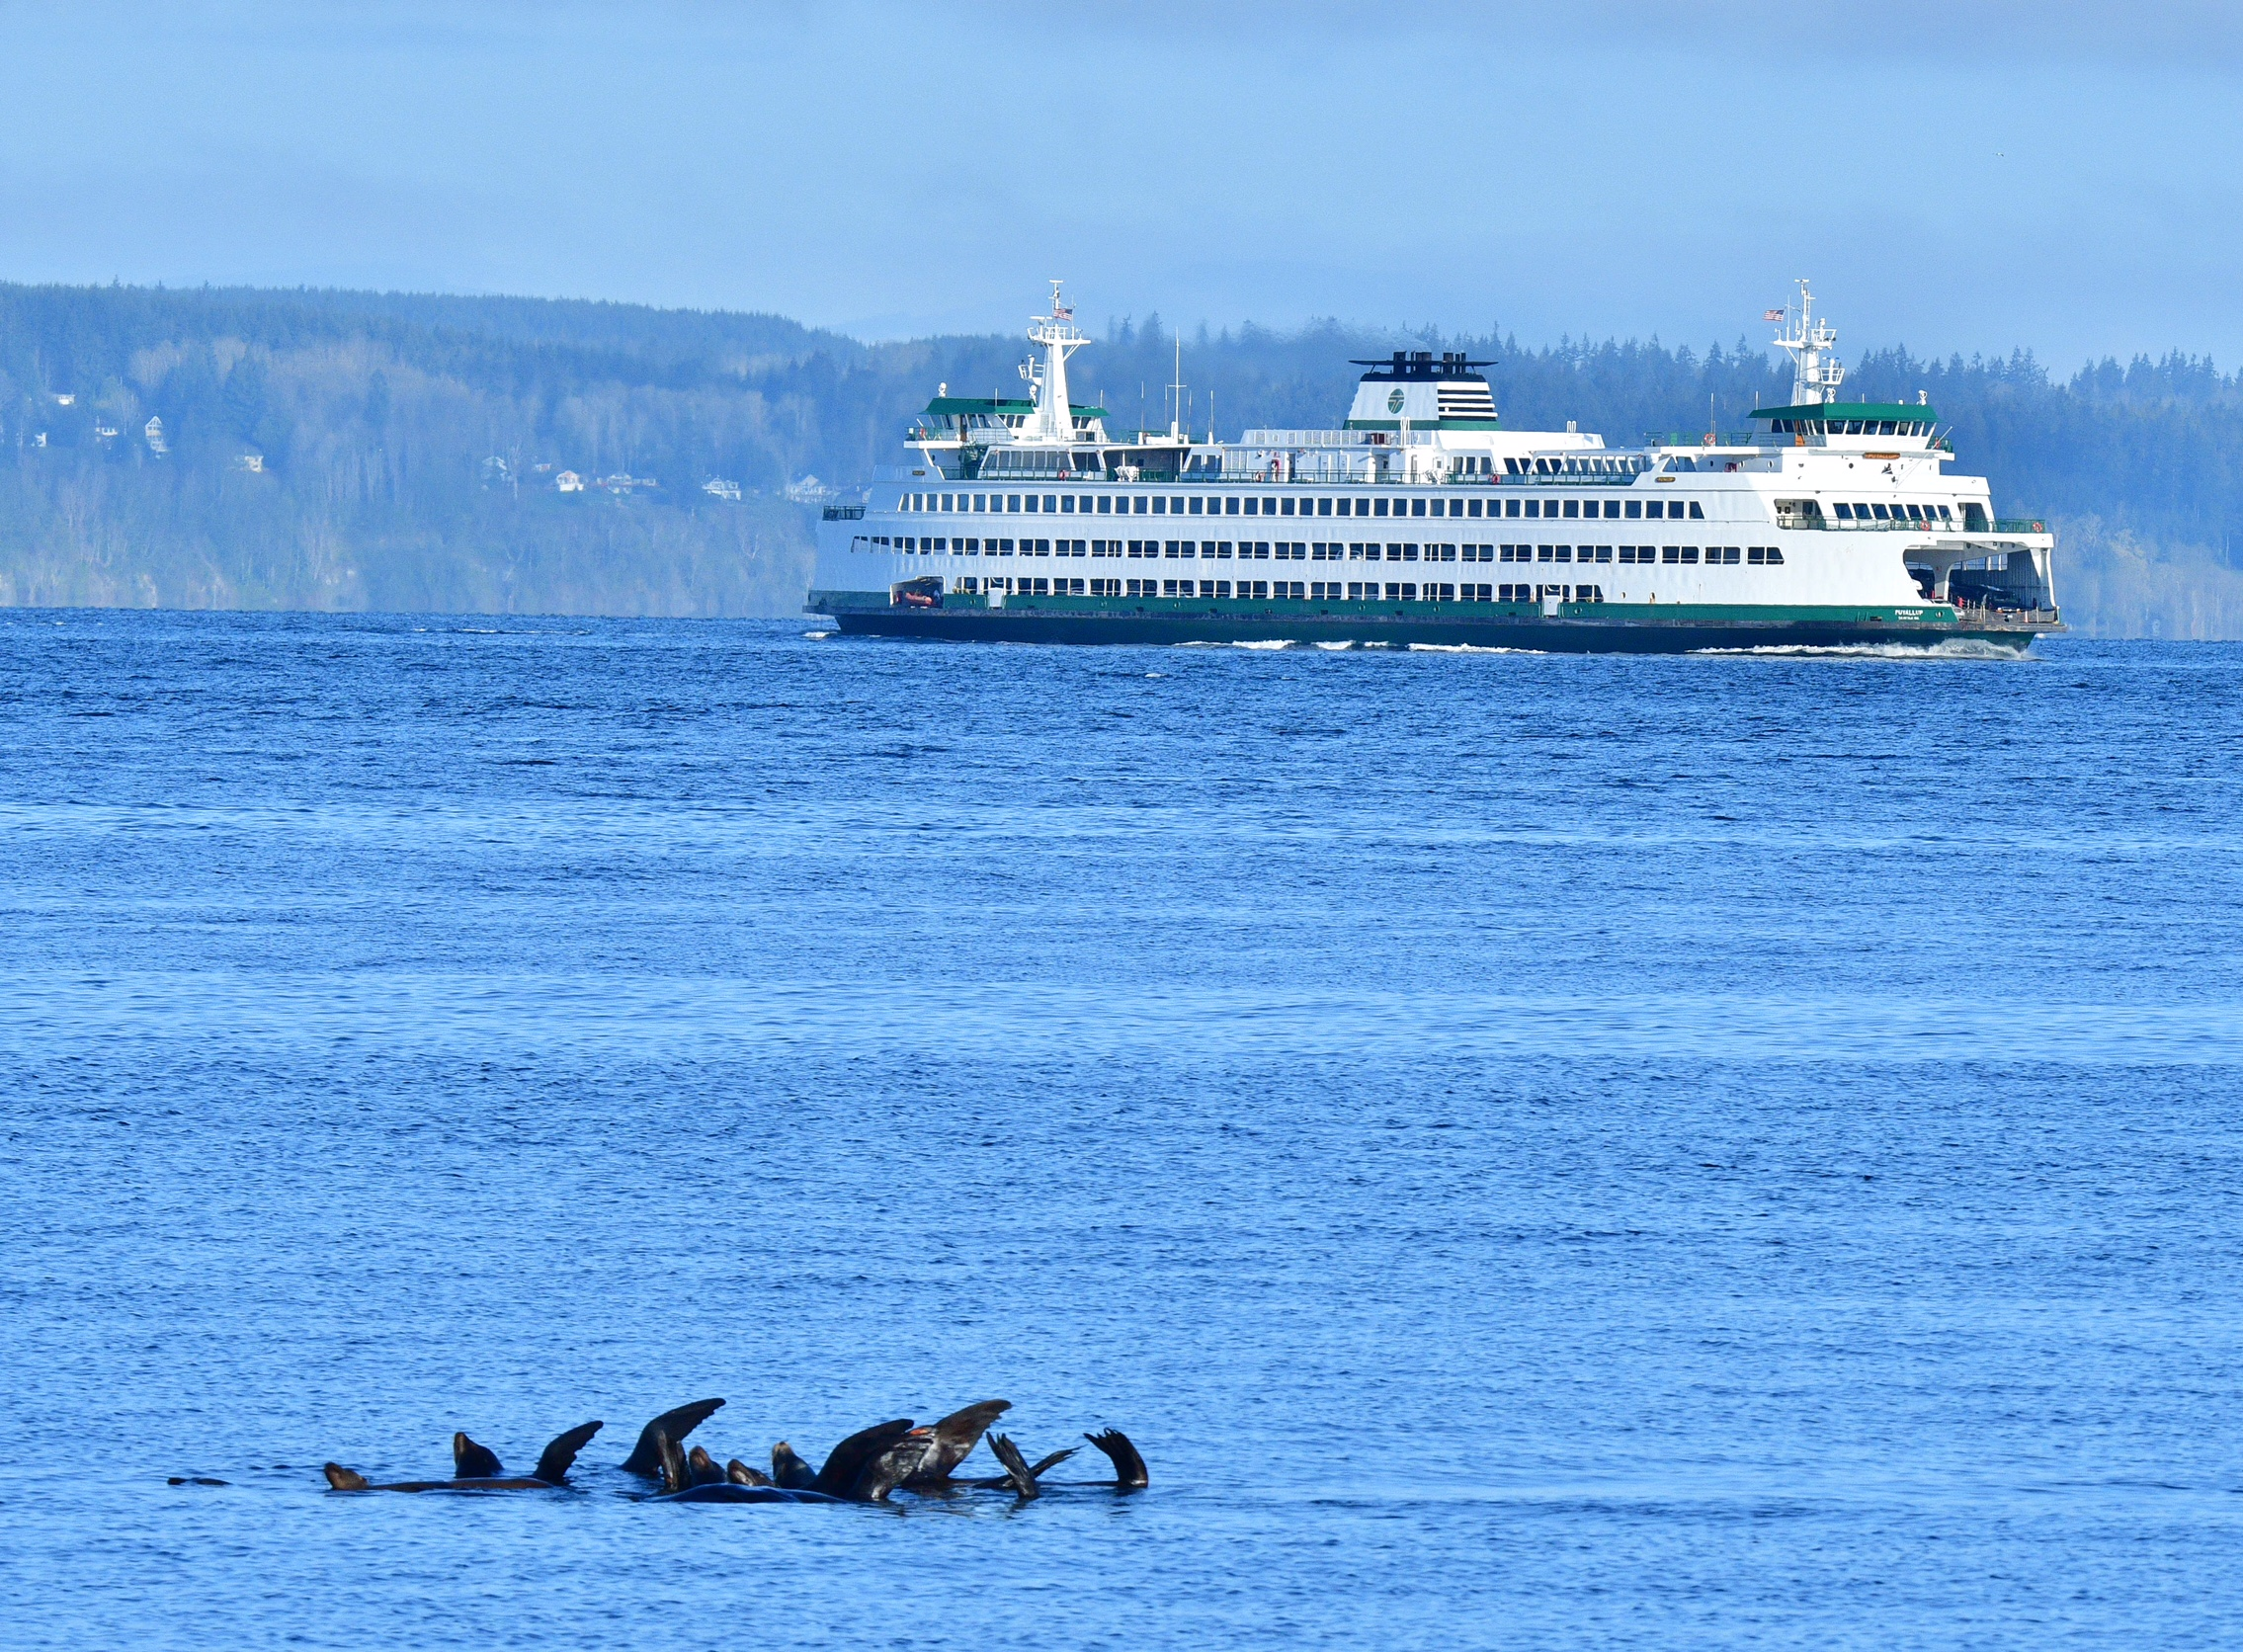 Scene in Edmonds: A lovely day for sea lions at play - My Edmonds News